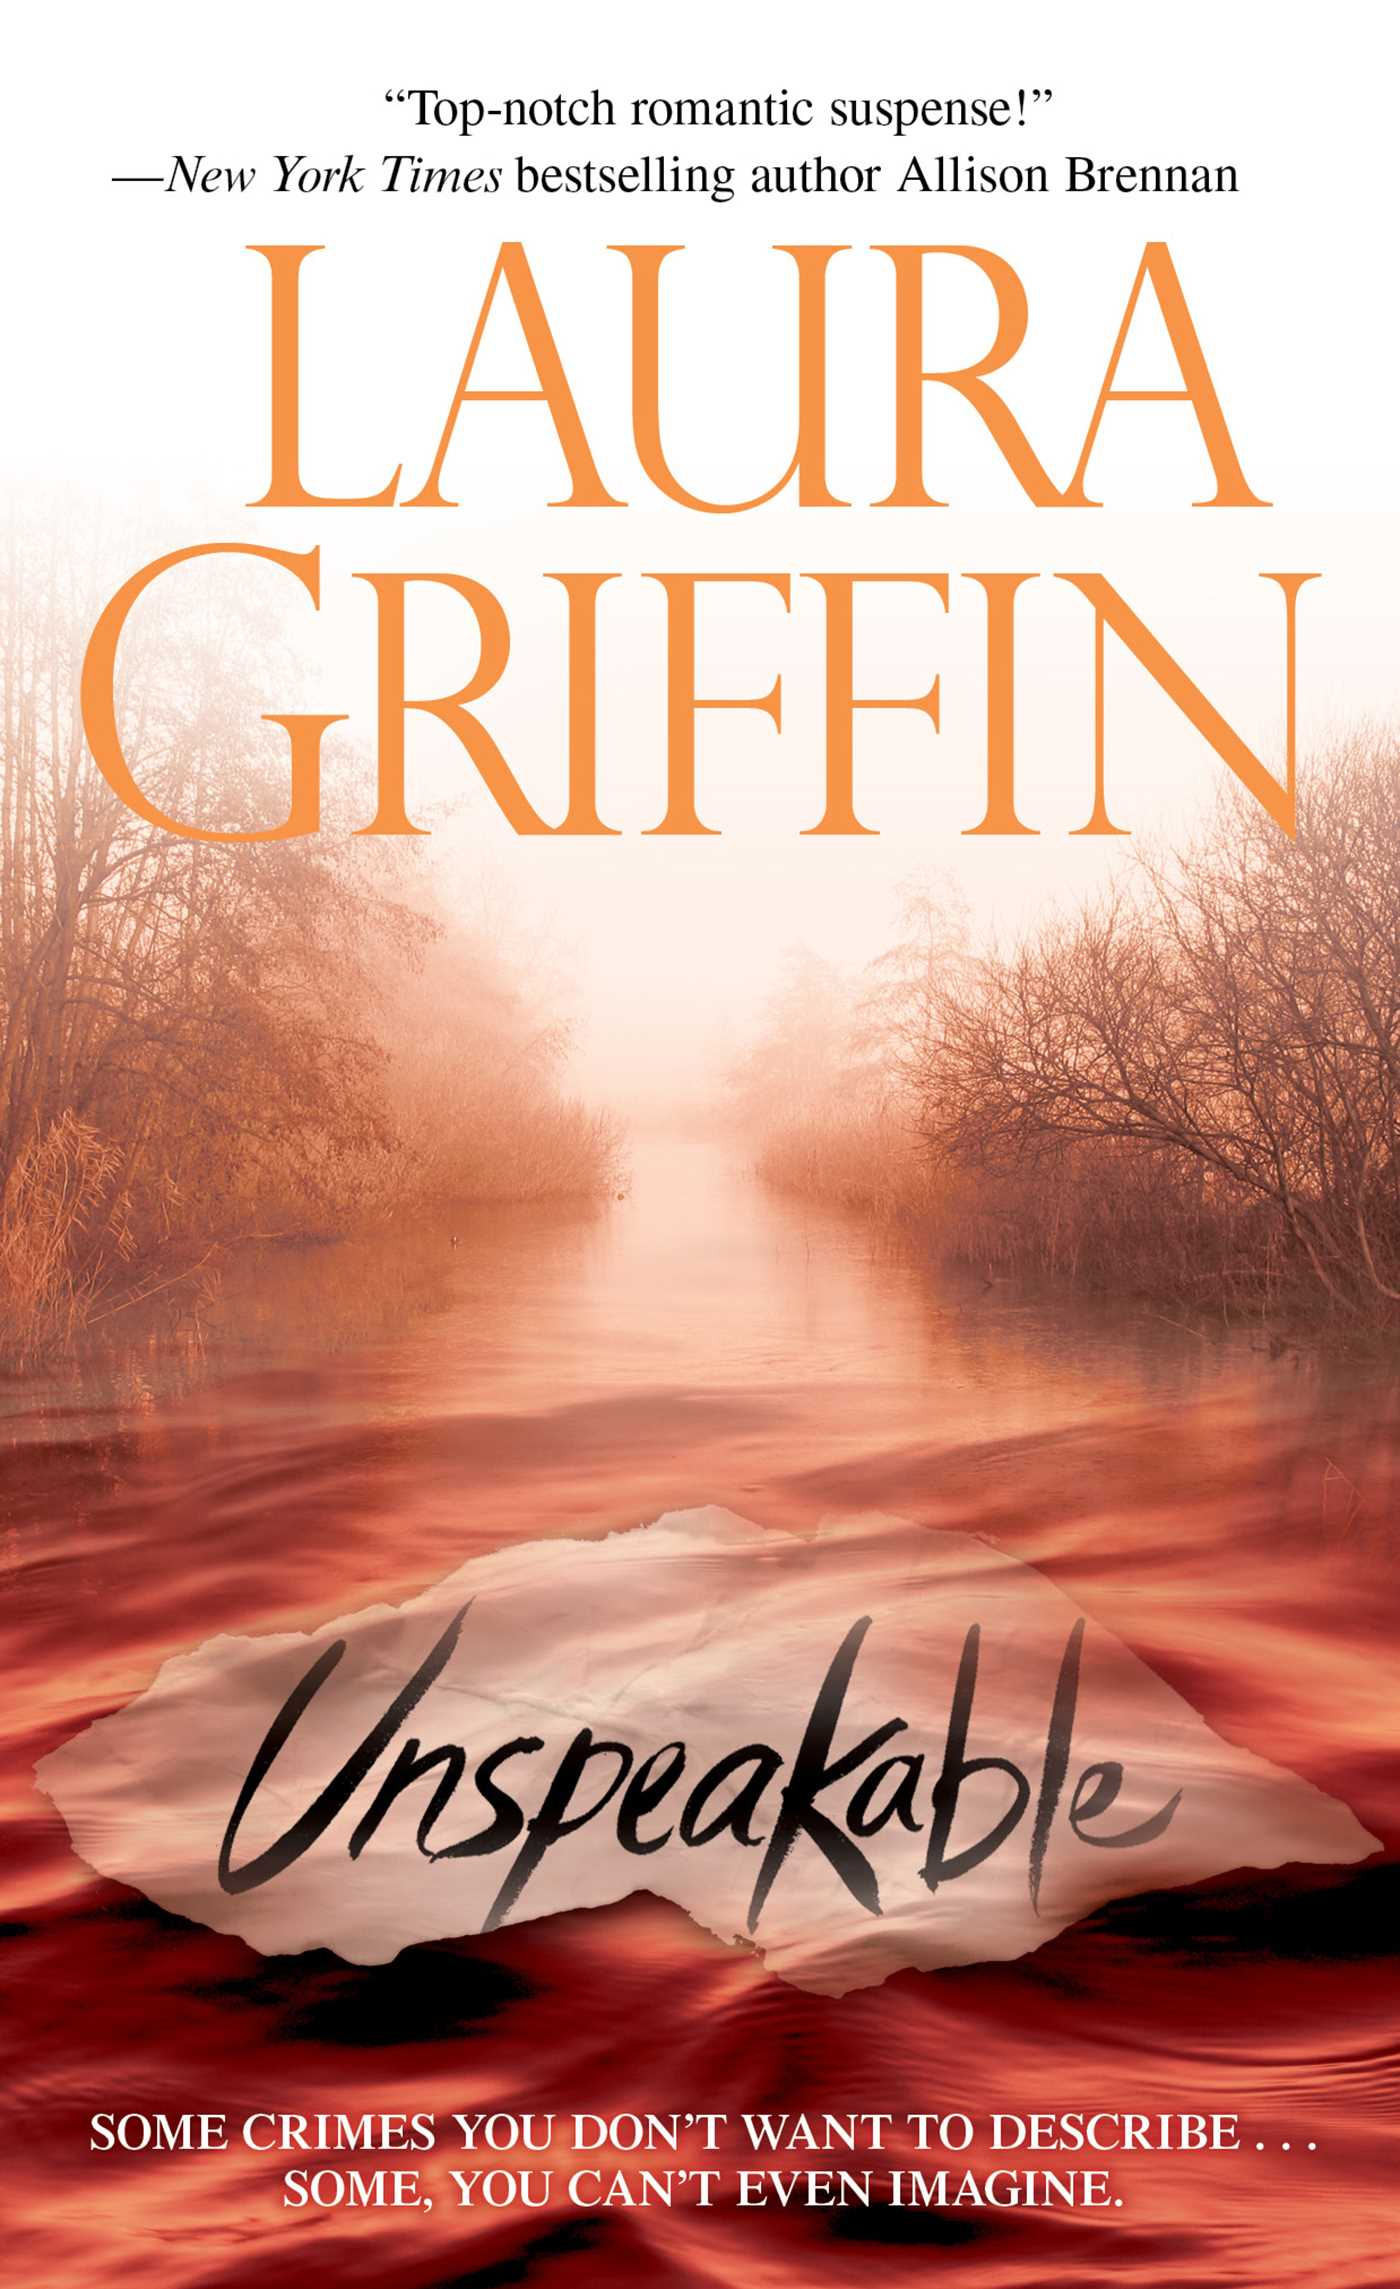 Unspeakable | Book by Laura Griffin | Official Publisher